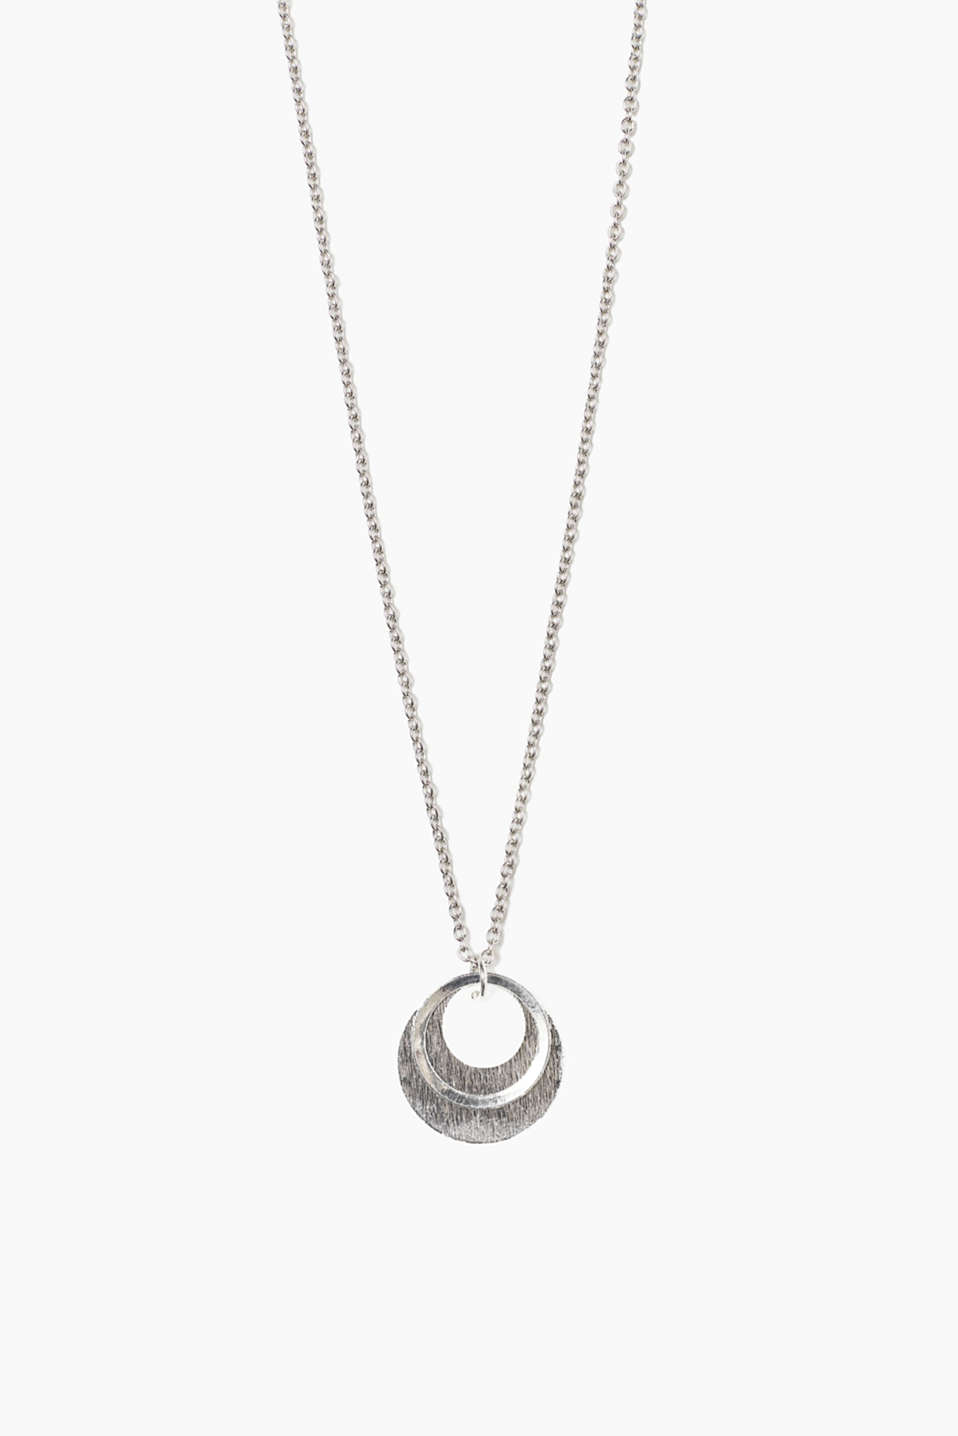 Link chain with pendant in a timeless silver tone